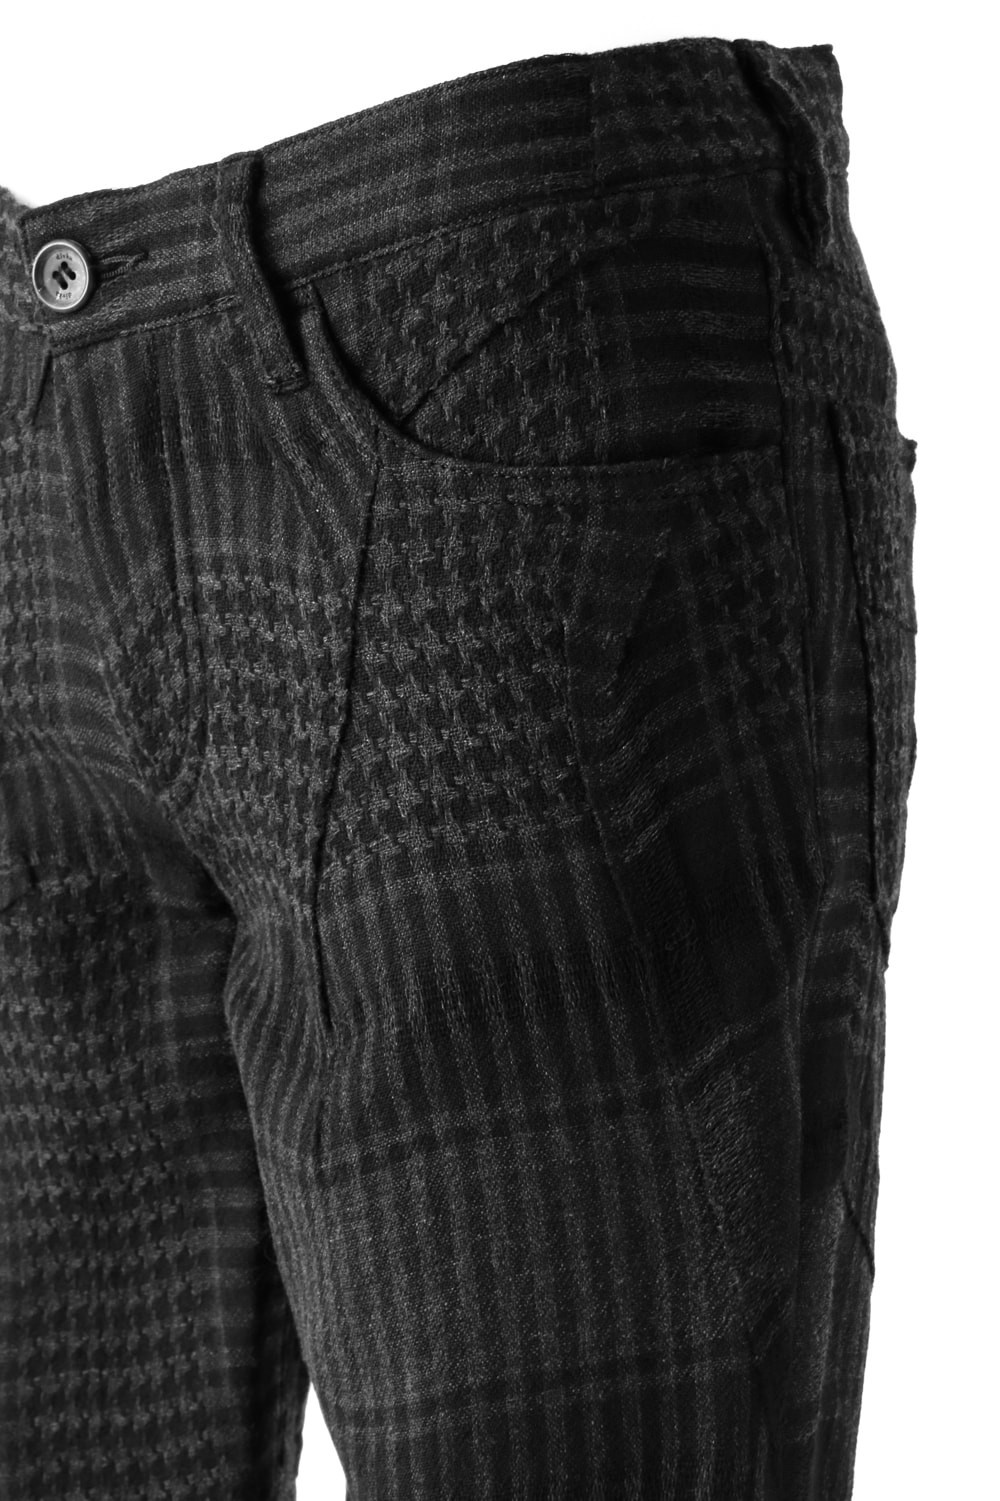 Distorted Check Needle Punch Pants - 07-P03